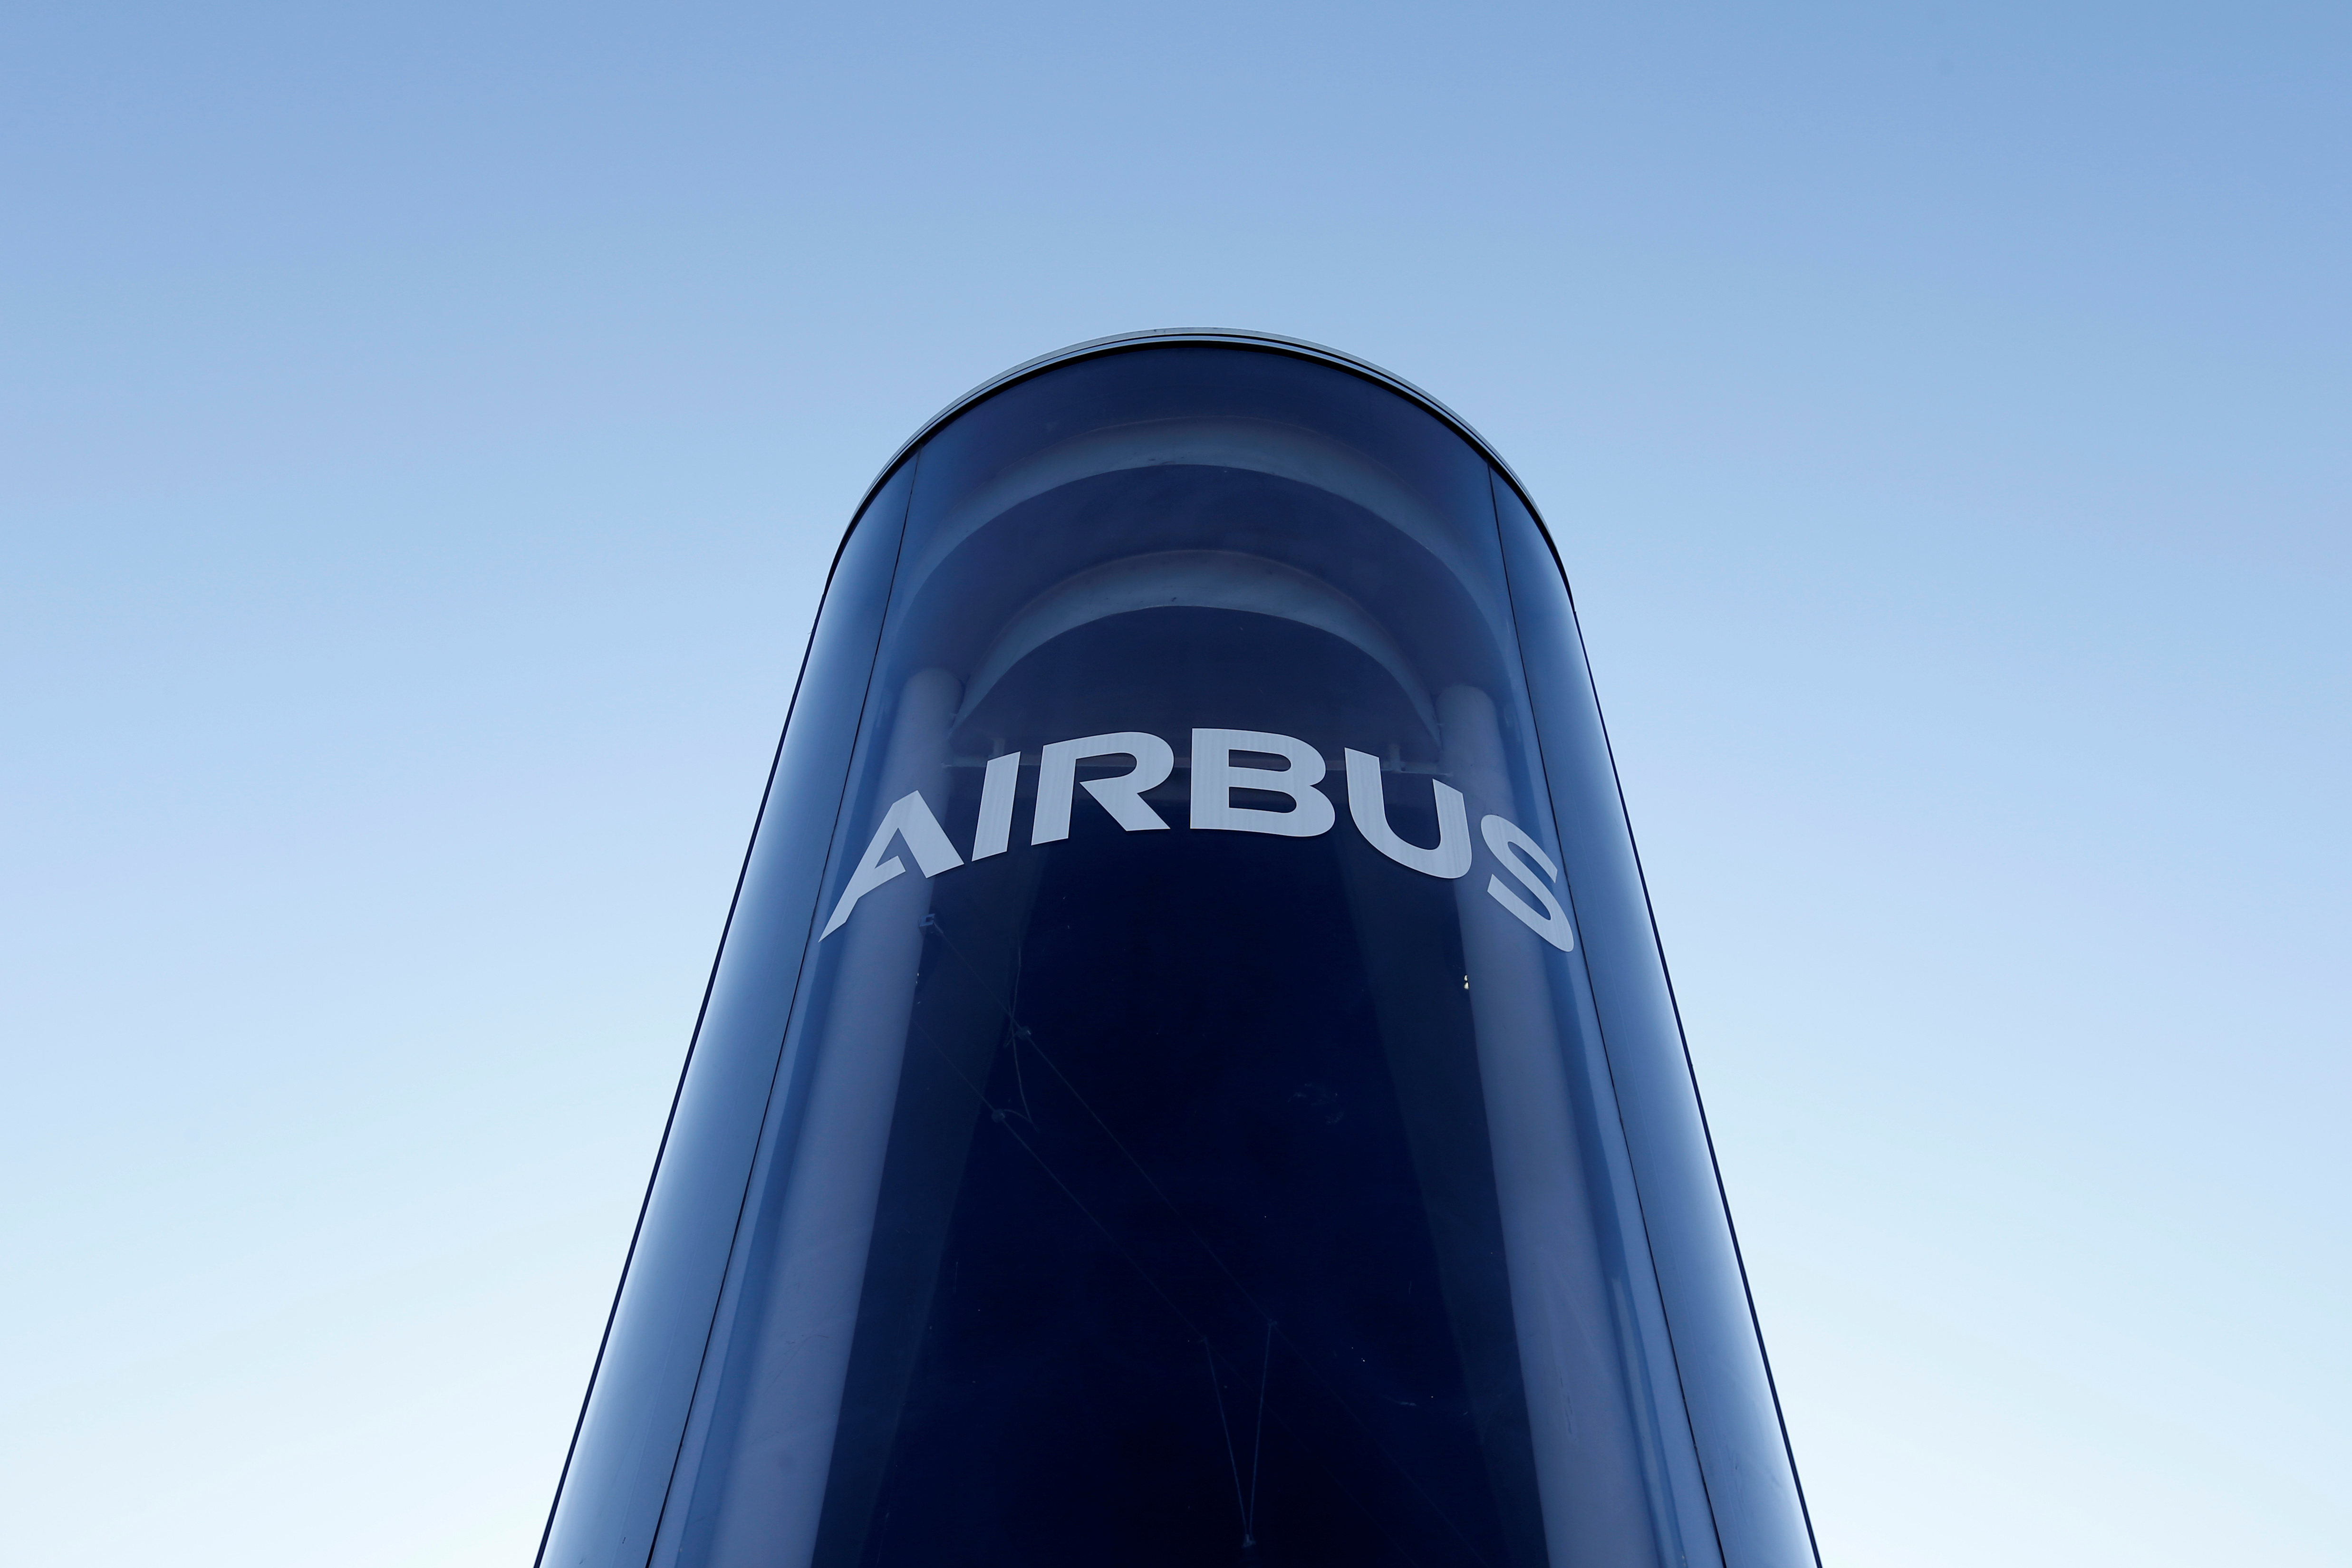 The Airbus logo is pictured at Airbus headquarters in Blagnac near Toulouse, France, March 20, 2019.   REUTERS/Regis Duvignau